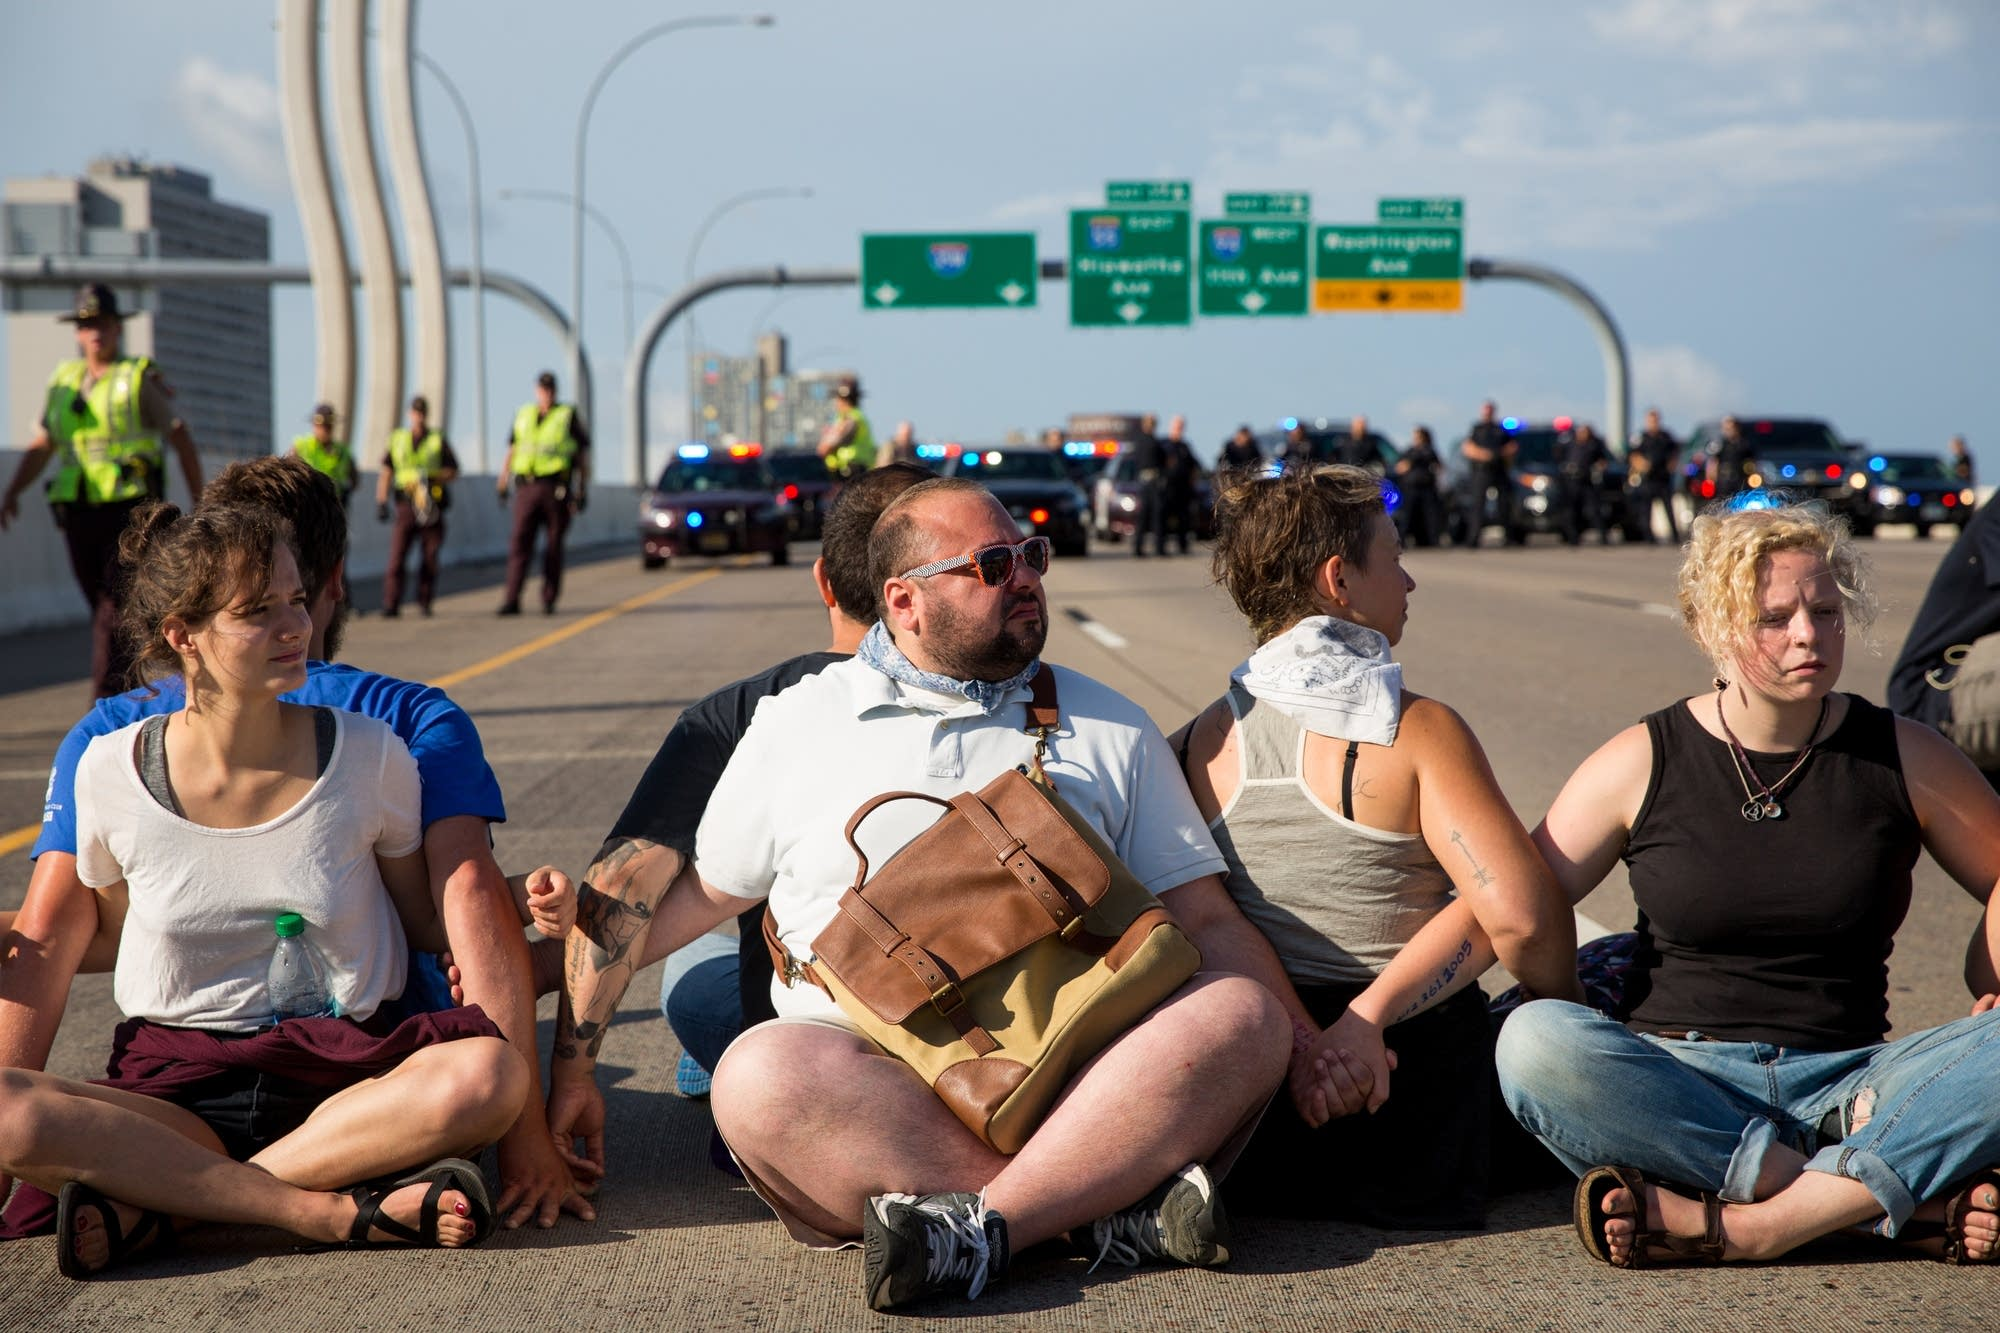 Protesters take a seat before being arrested.